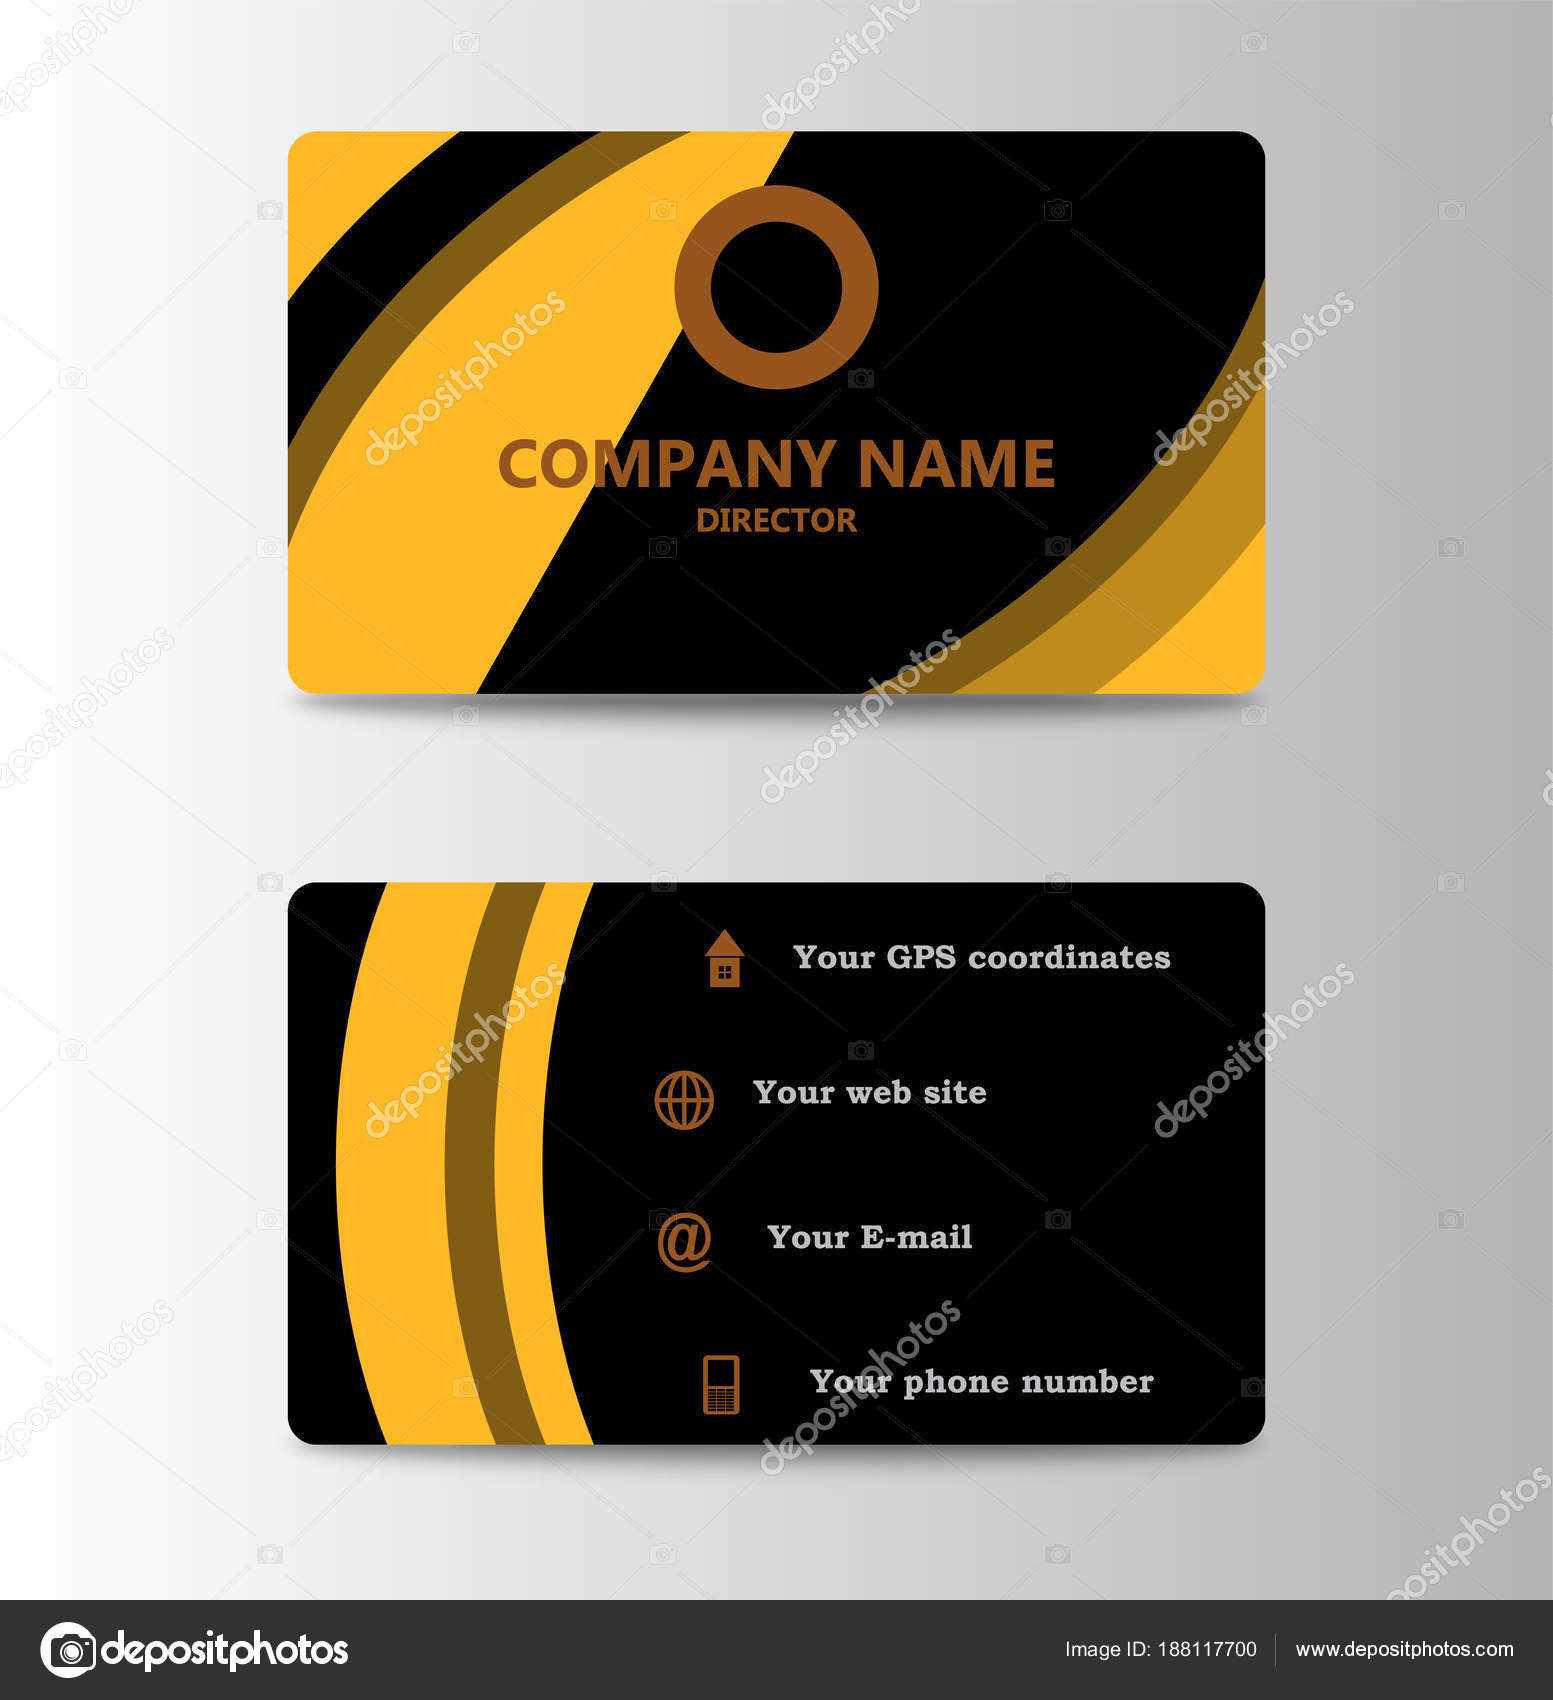 Corporate ID Card Design Template. Personal id card for business and ...